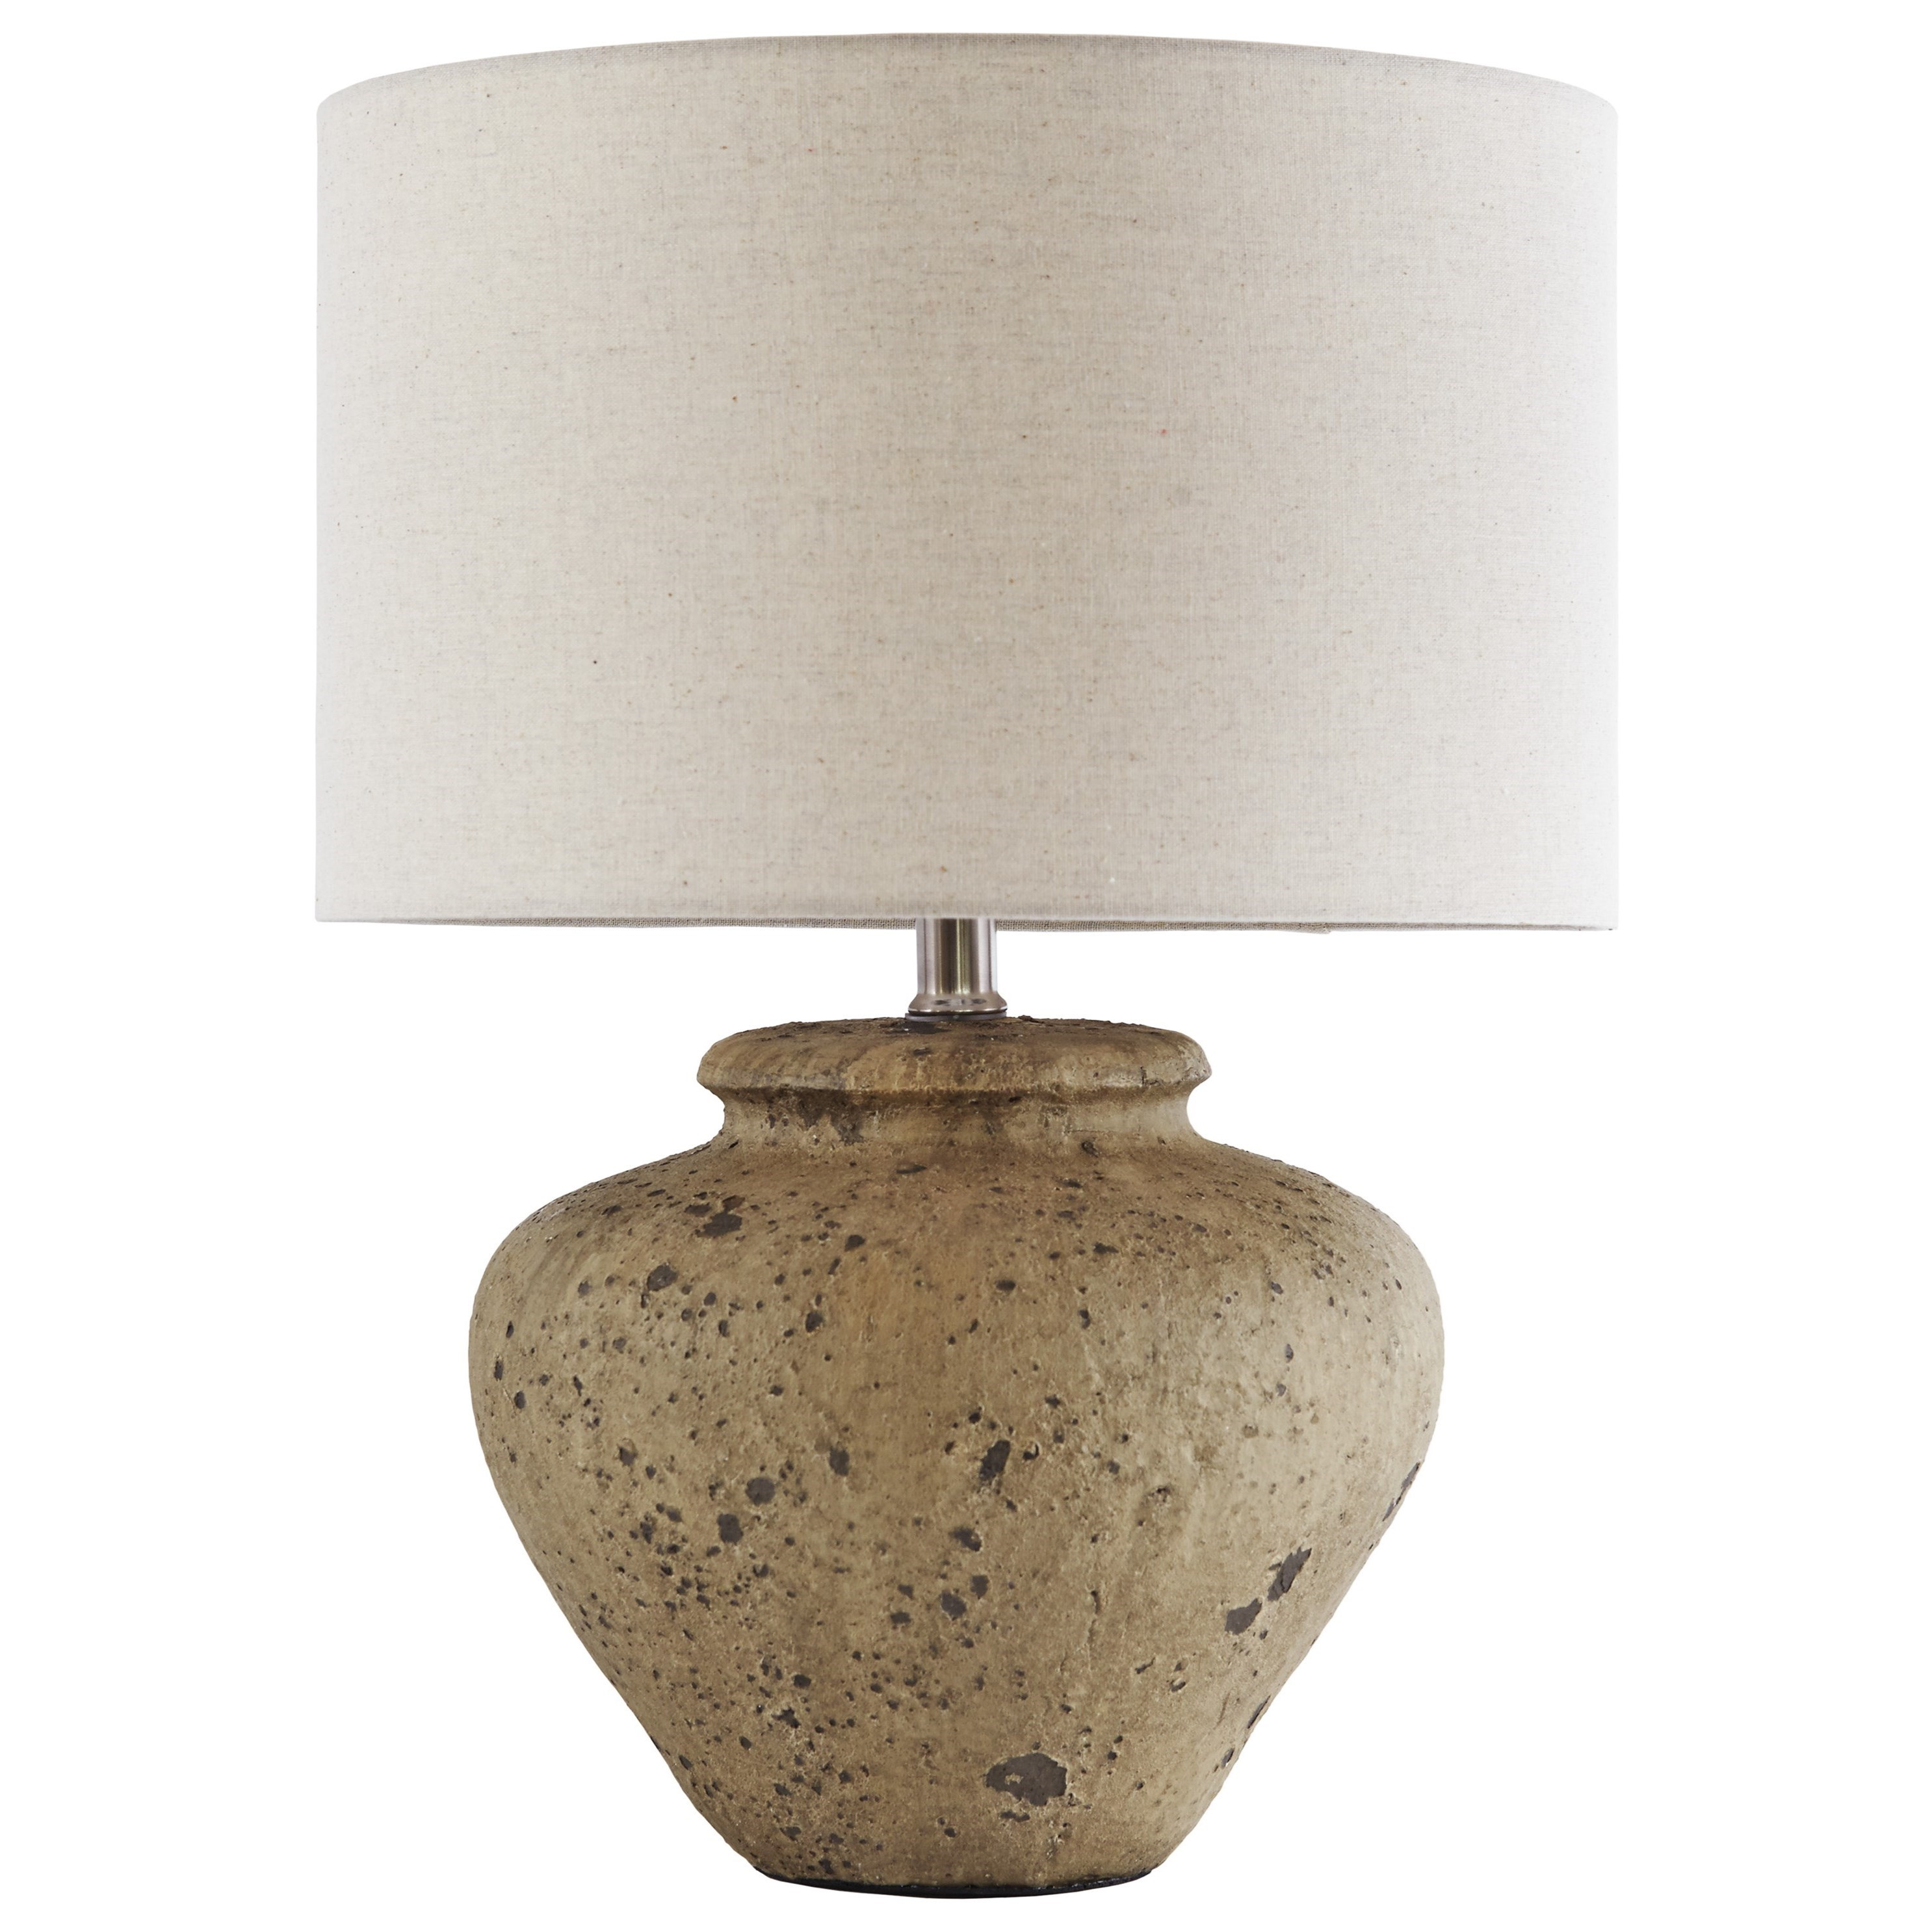 Signature Design by Ashley Lamps - Vintage Style Mahfuz Beige Ceramic Table Lamp - Item Number: L100654